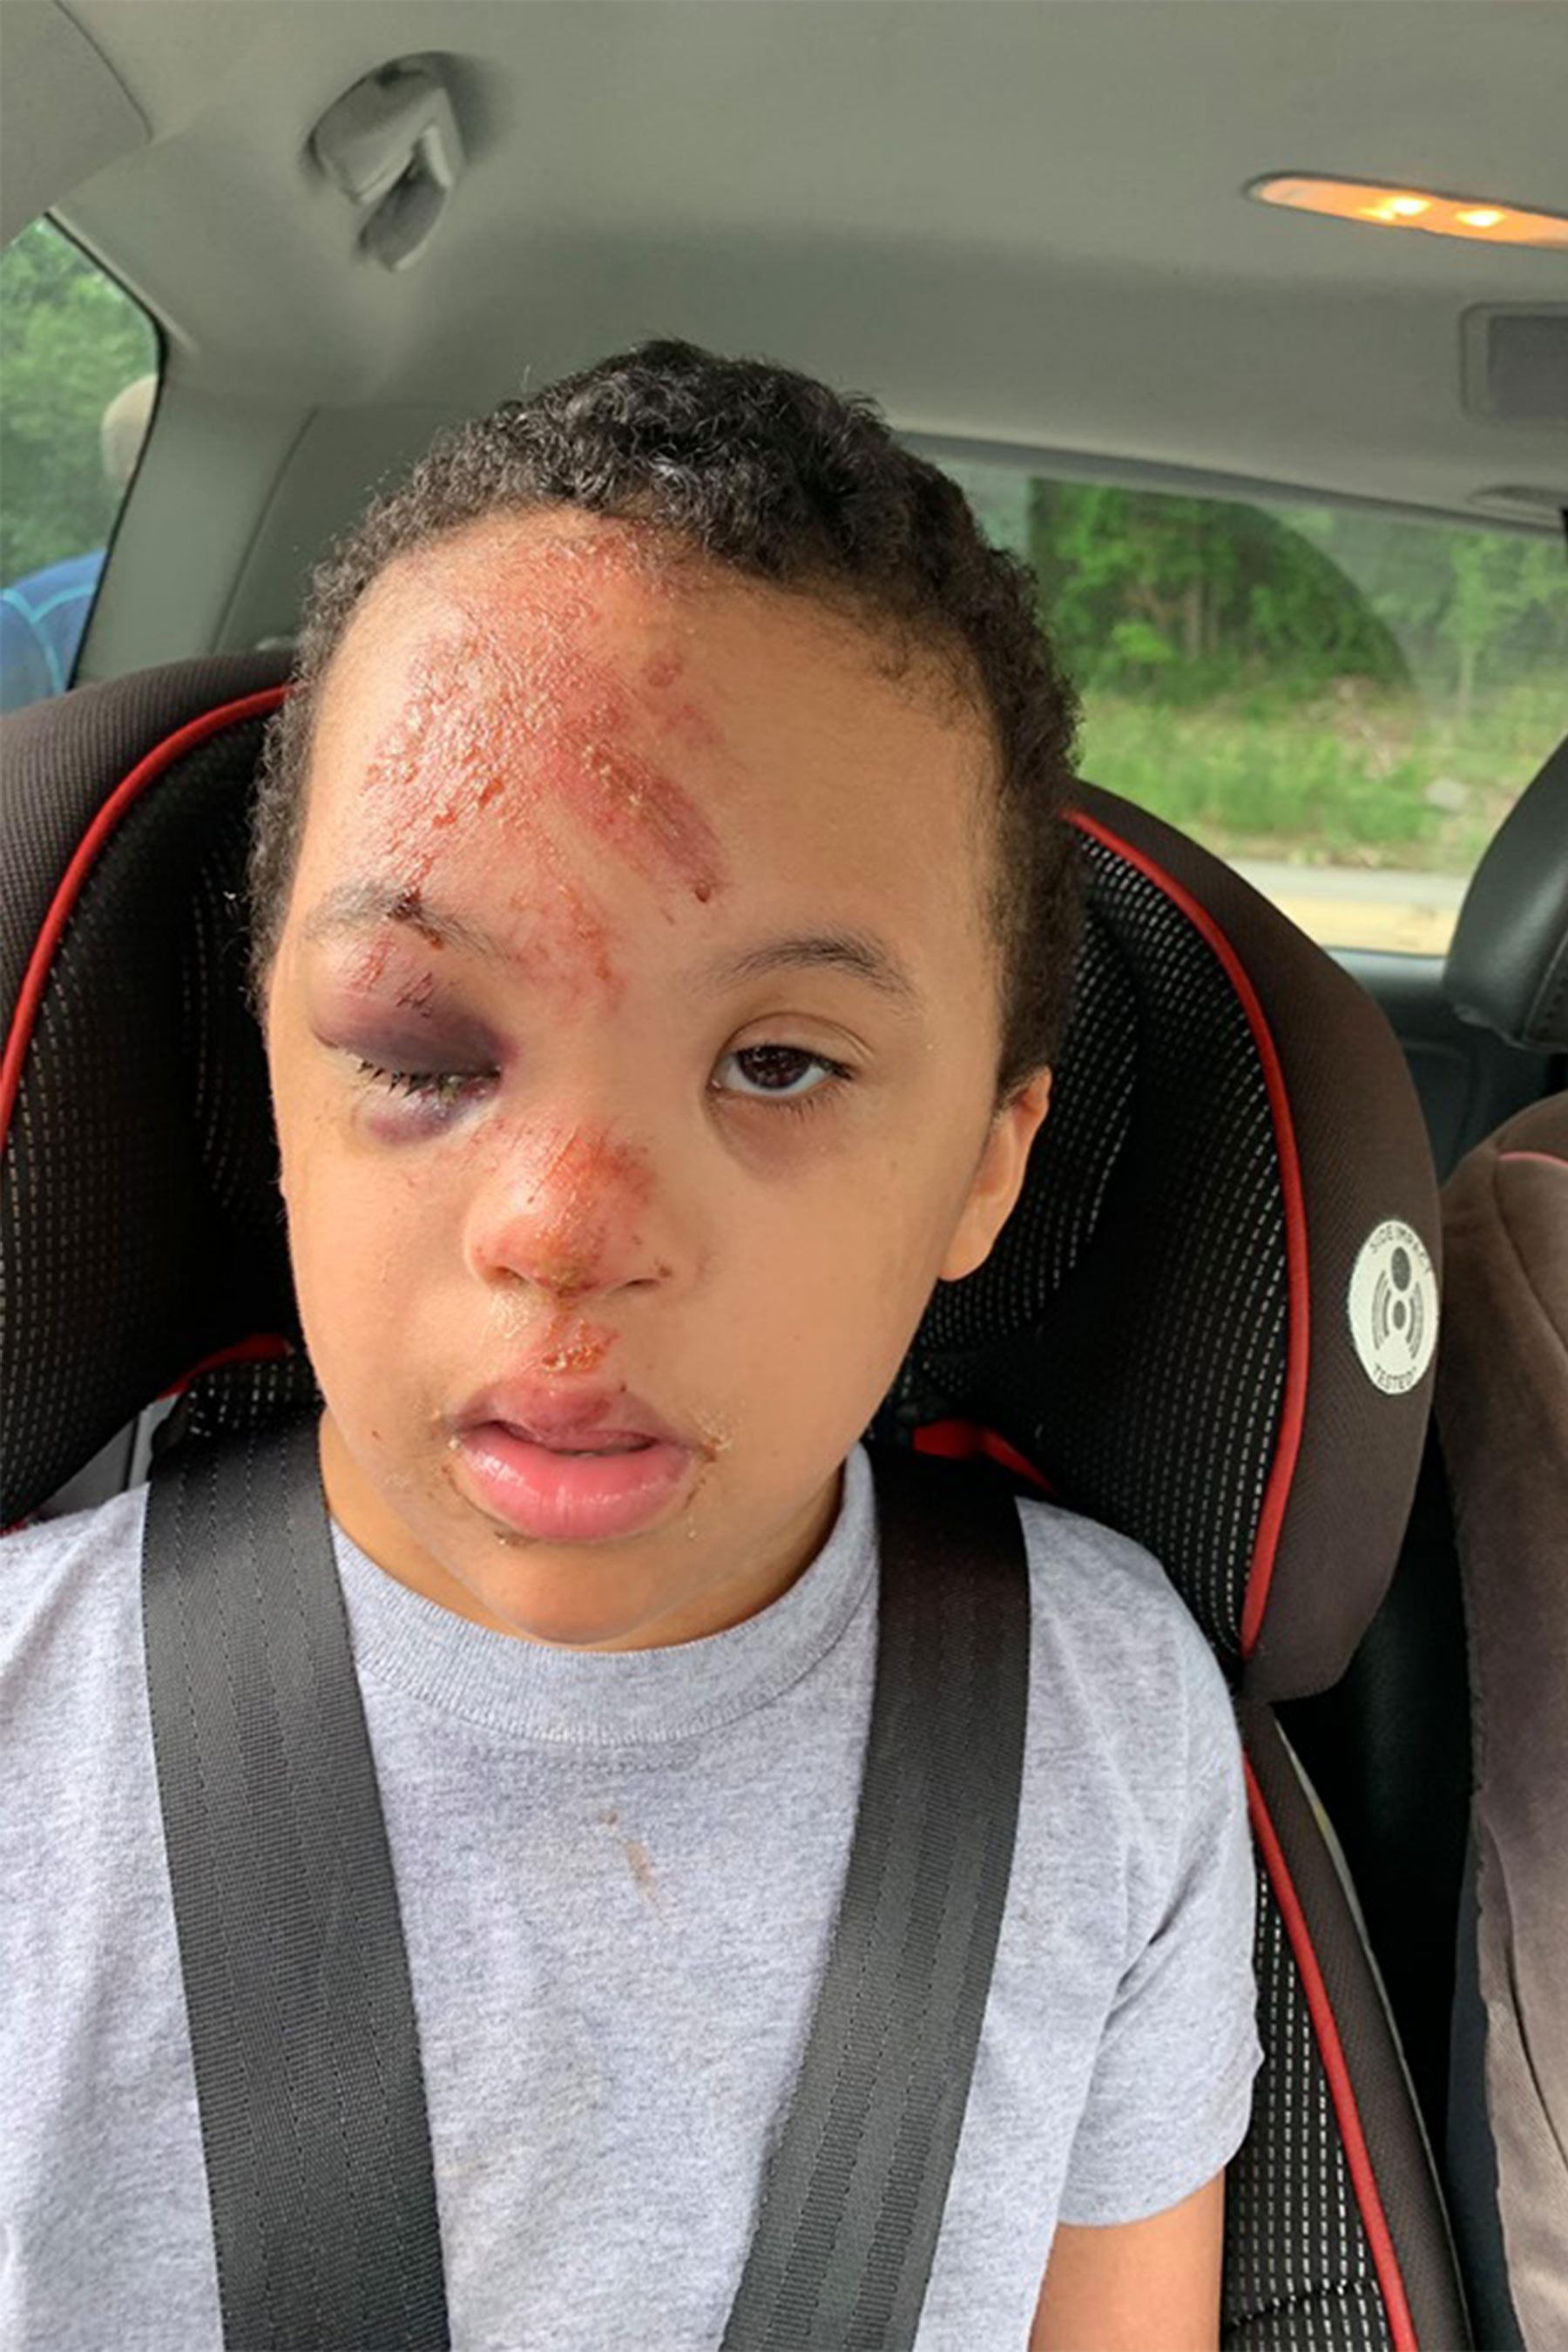 Pennsylvania Mom Outraged After Son, 7, with Down Syndrome Suffers Bloodied Face on School Bus